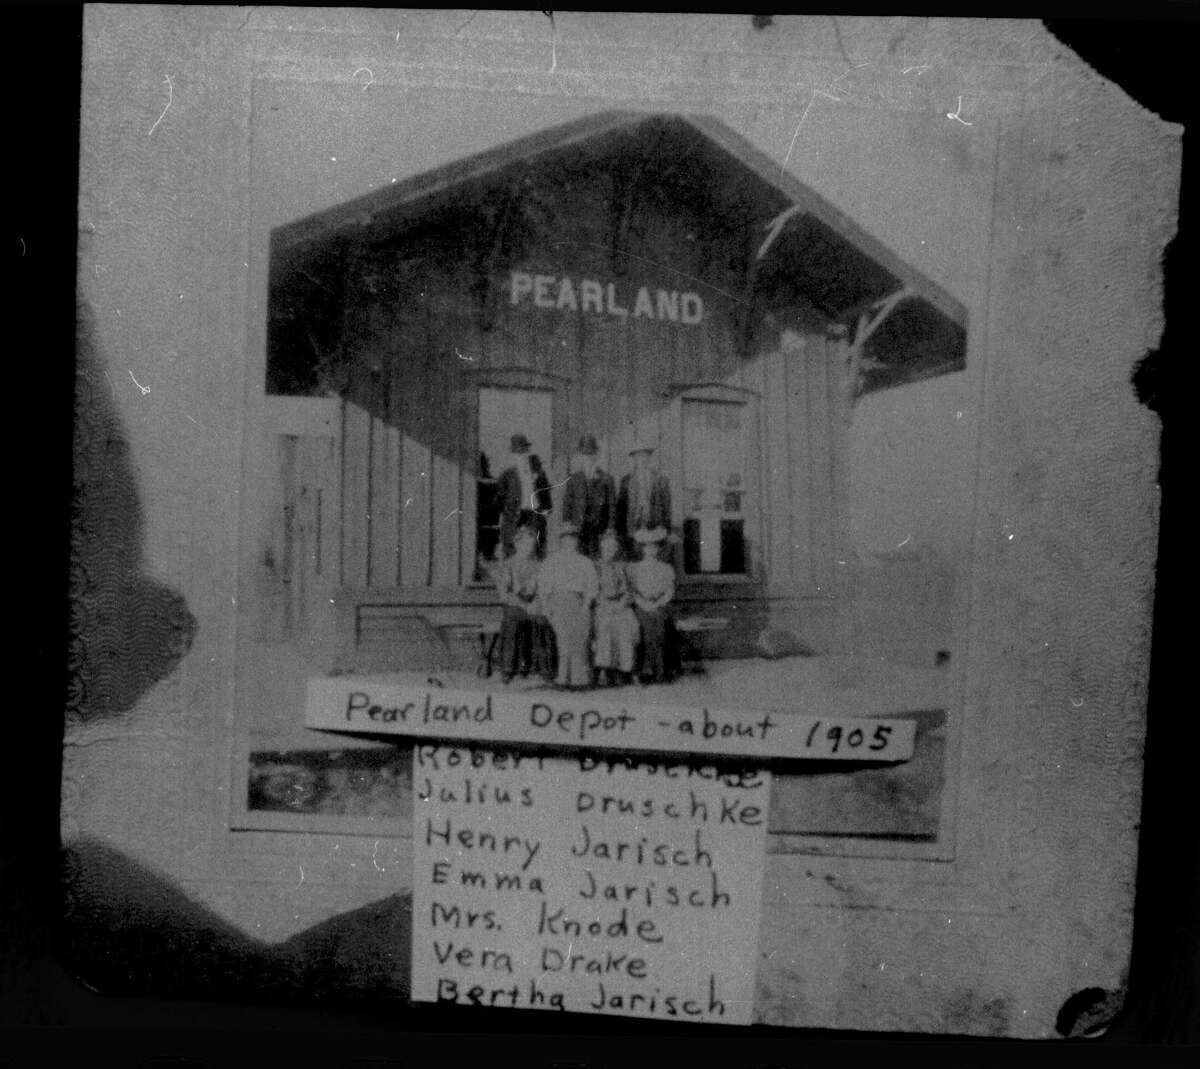 Plans to renovate the Pearland Train Depot, shown in this photos from 1905, have been halted by the coronavirus pandemic. The building - the oldest existing one in Pearland - stood beside the railroad tracks by Texas 35 for decades and now is on Liberty Drive near City Hall.